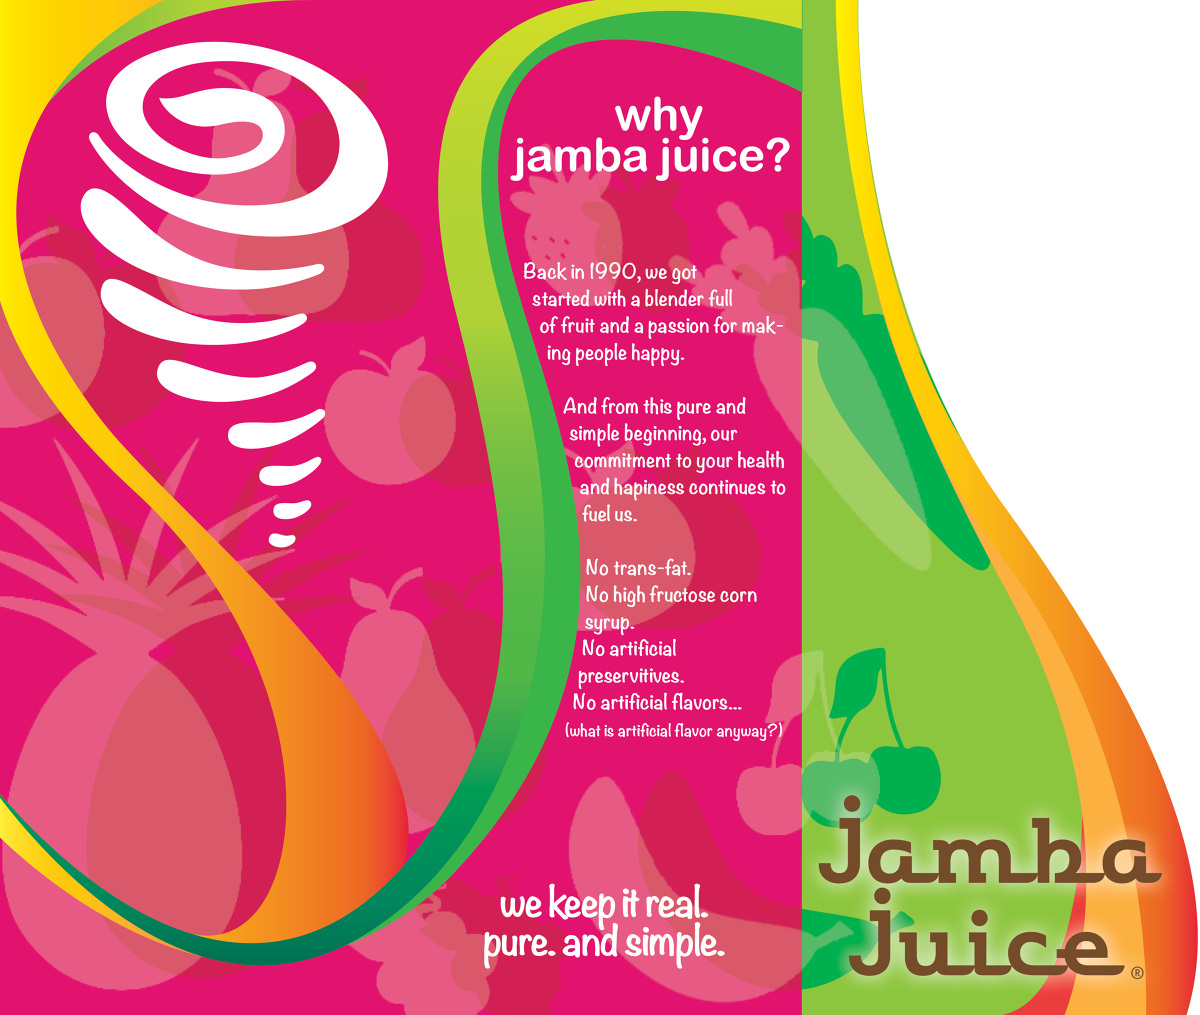 proposal for jamba juice Proposal to bring jamba juice to terminal m jamba juice is a great option for the travellers that want to bask our in dining experience as they await their flight besides for those travellers running buttocks and necessitate a speedy bite to eat they can transport on board.